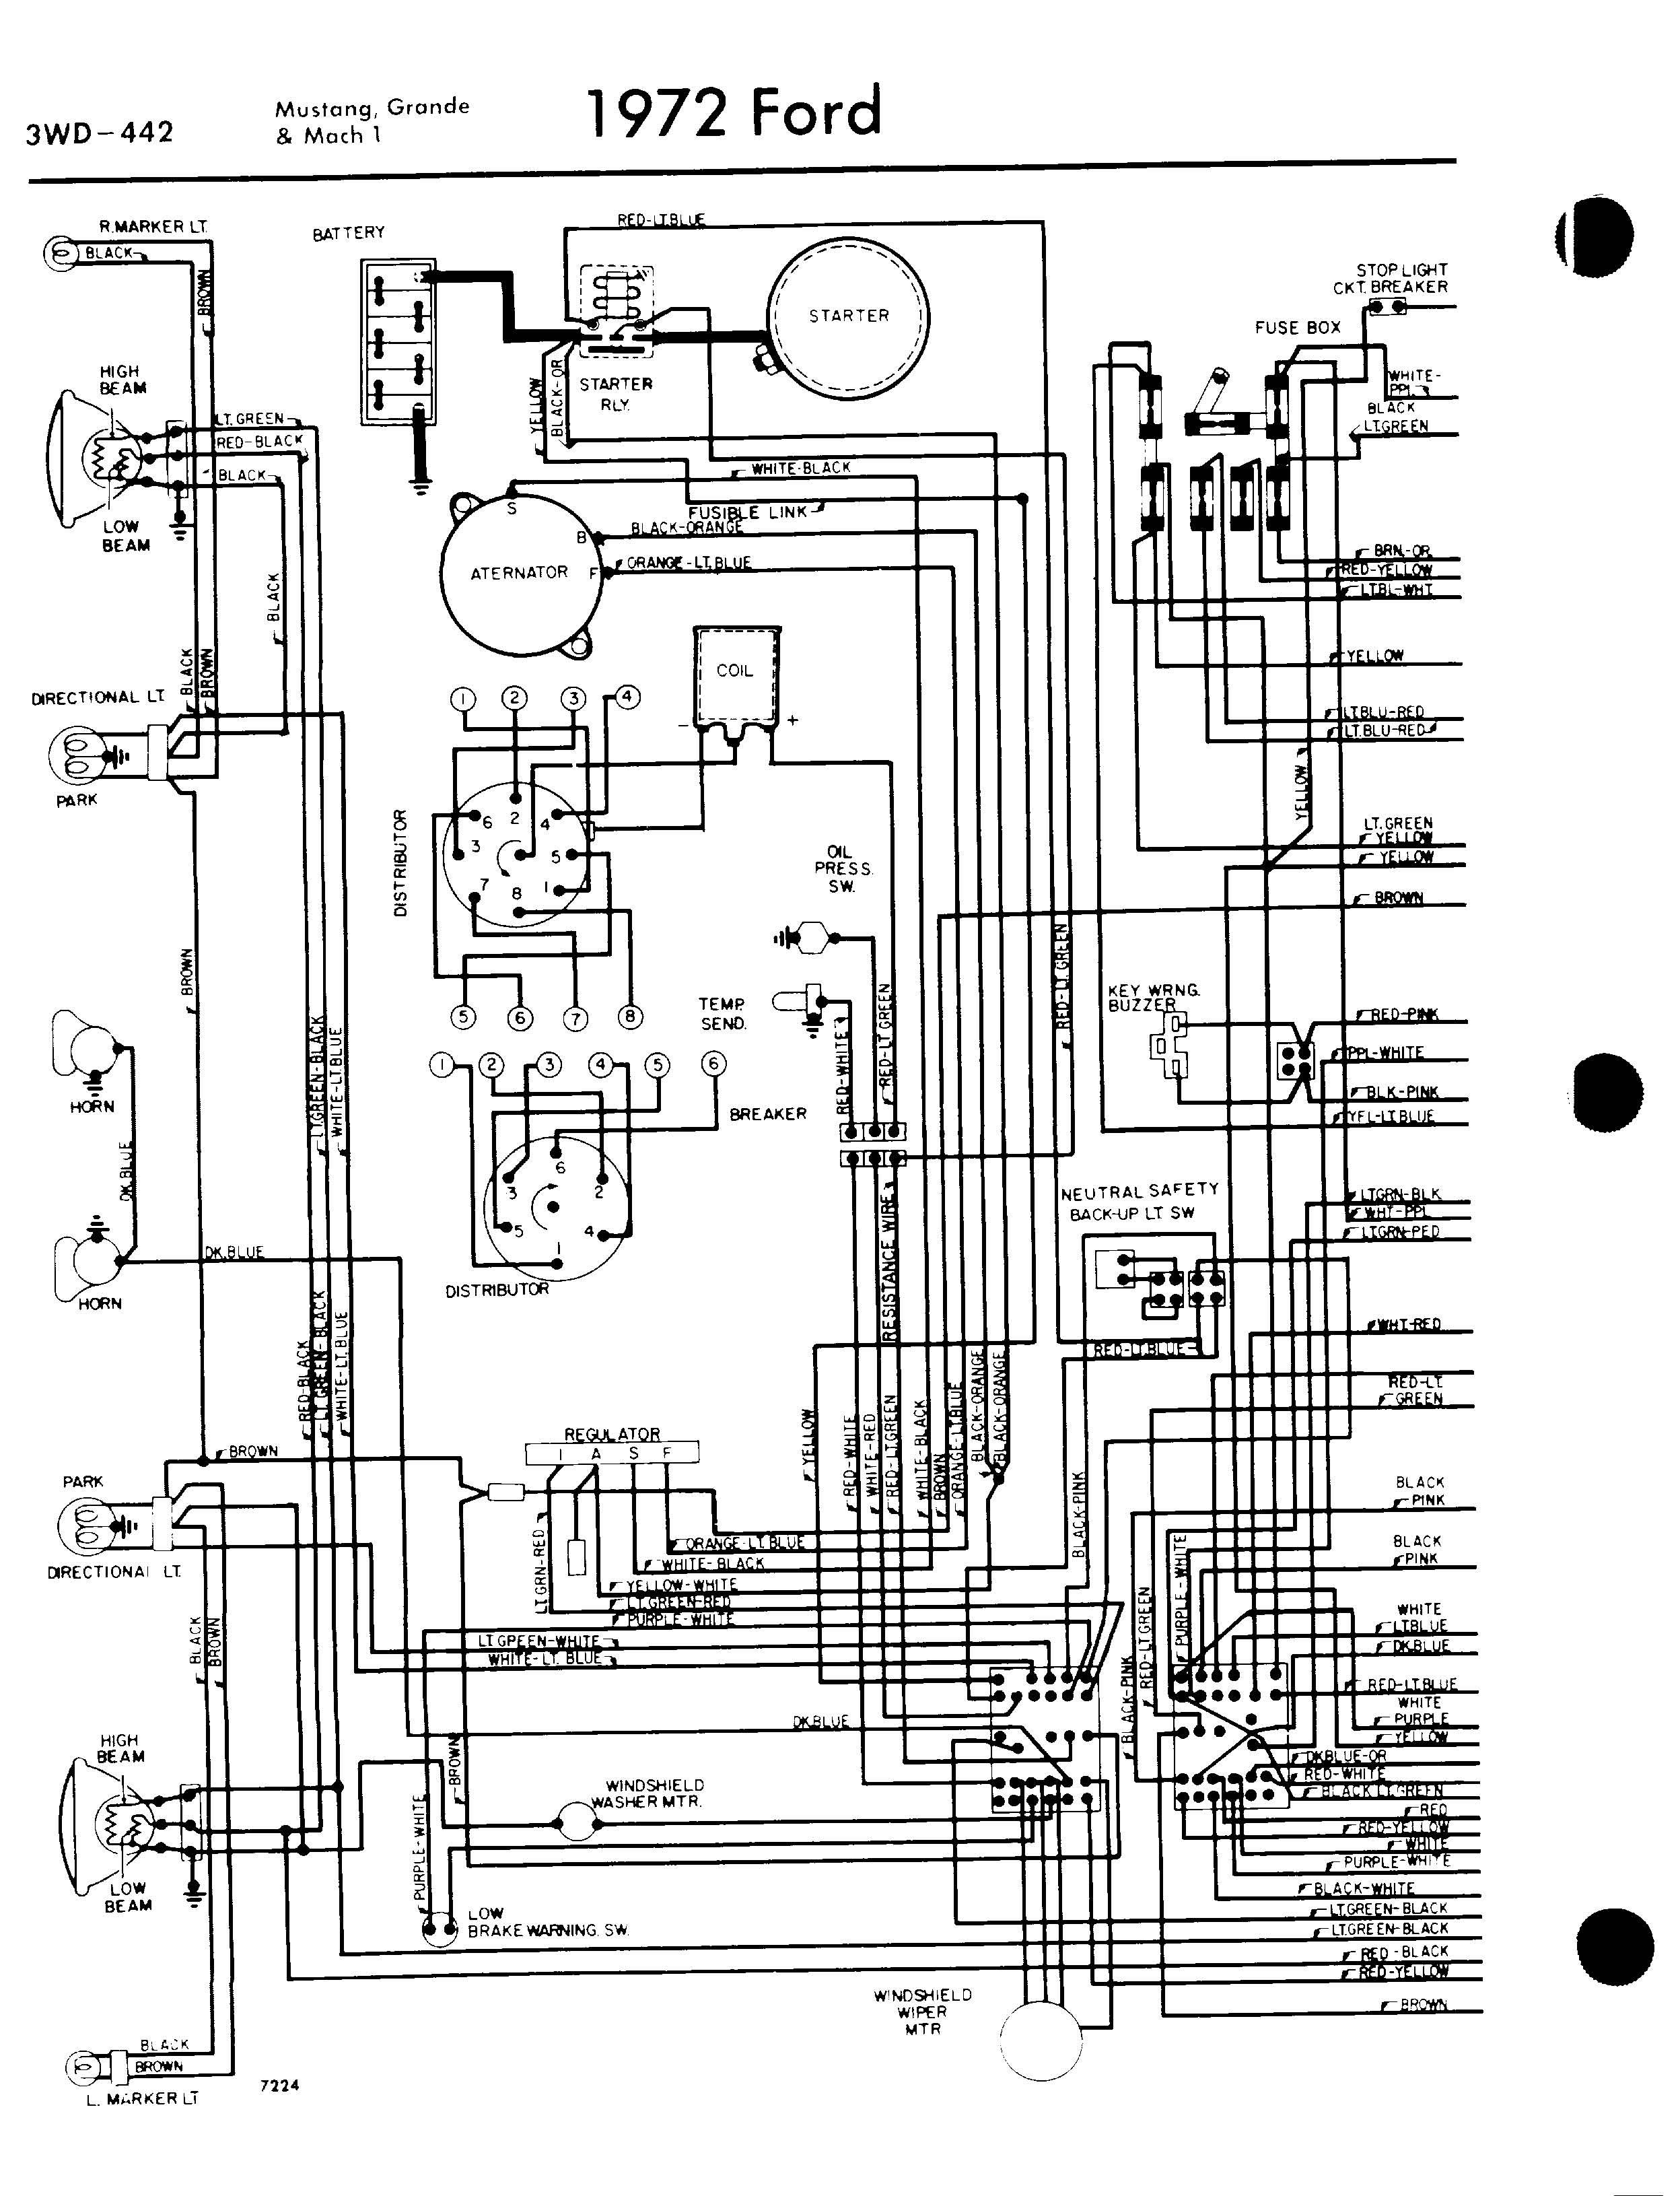 71af7a58e095e6a7716b32f1b23e8bd2 72 mach1 alternator wire harness diagram yahoo search results 1970 mustang wiring diagram at alyssarenee.co